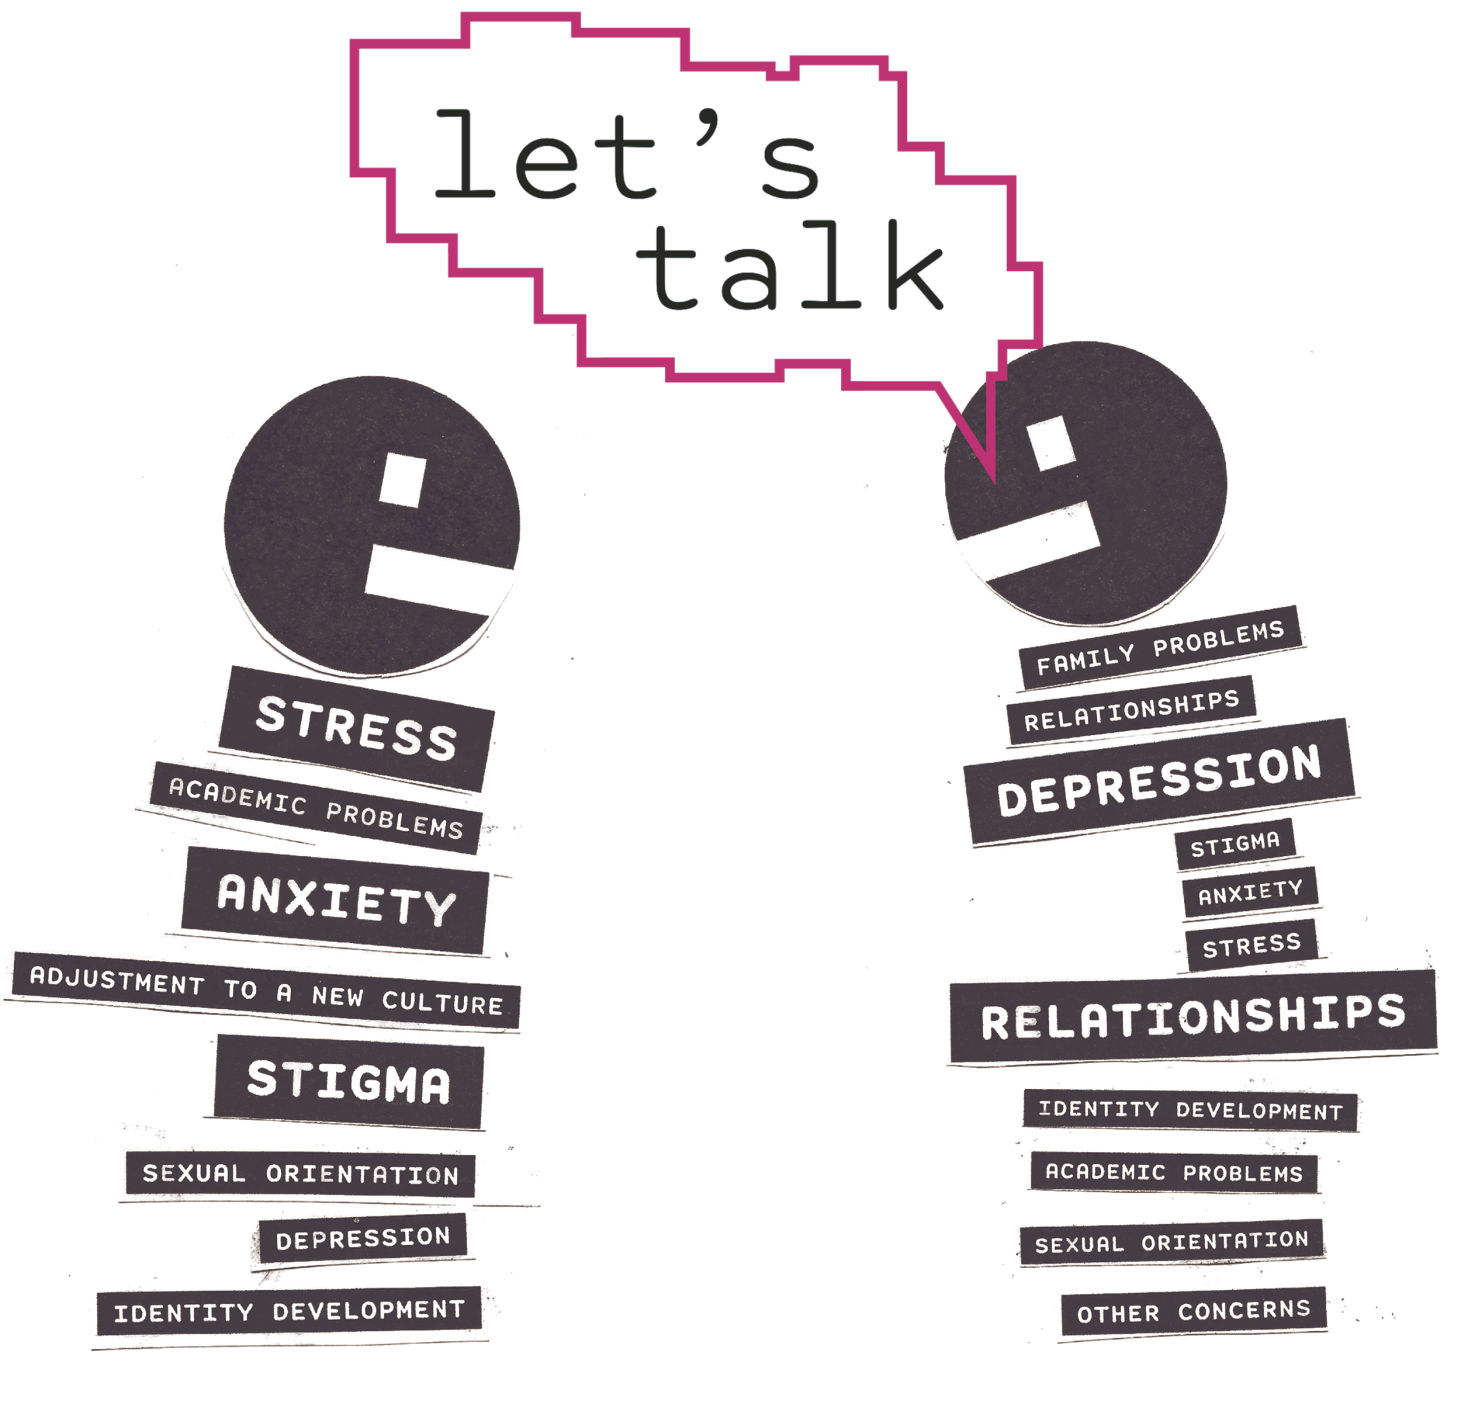 Student Counseling Services offers Let's Talk program